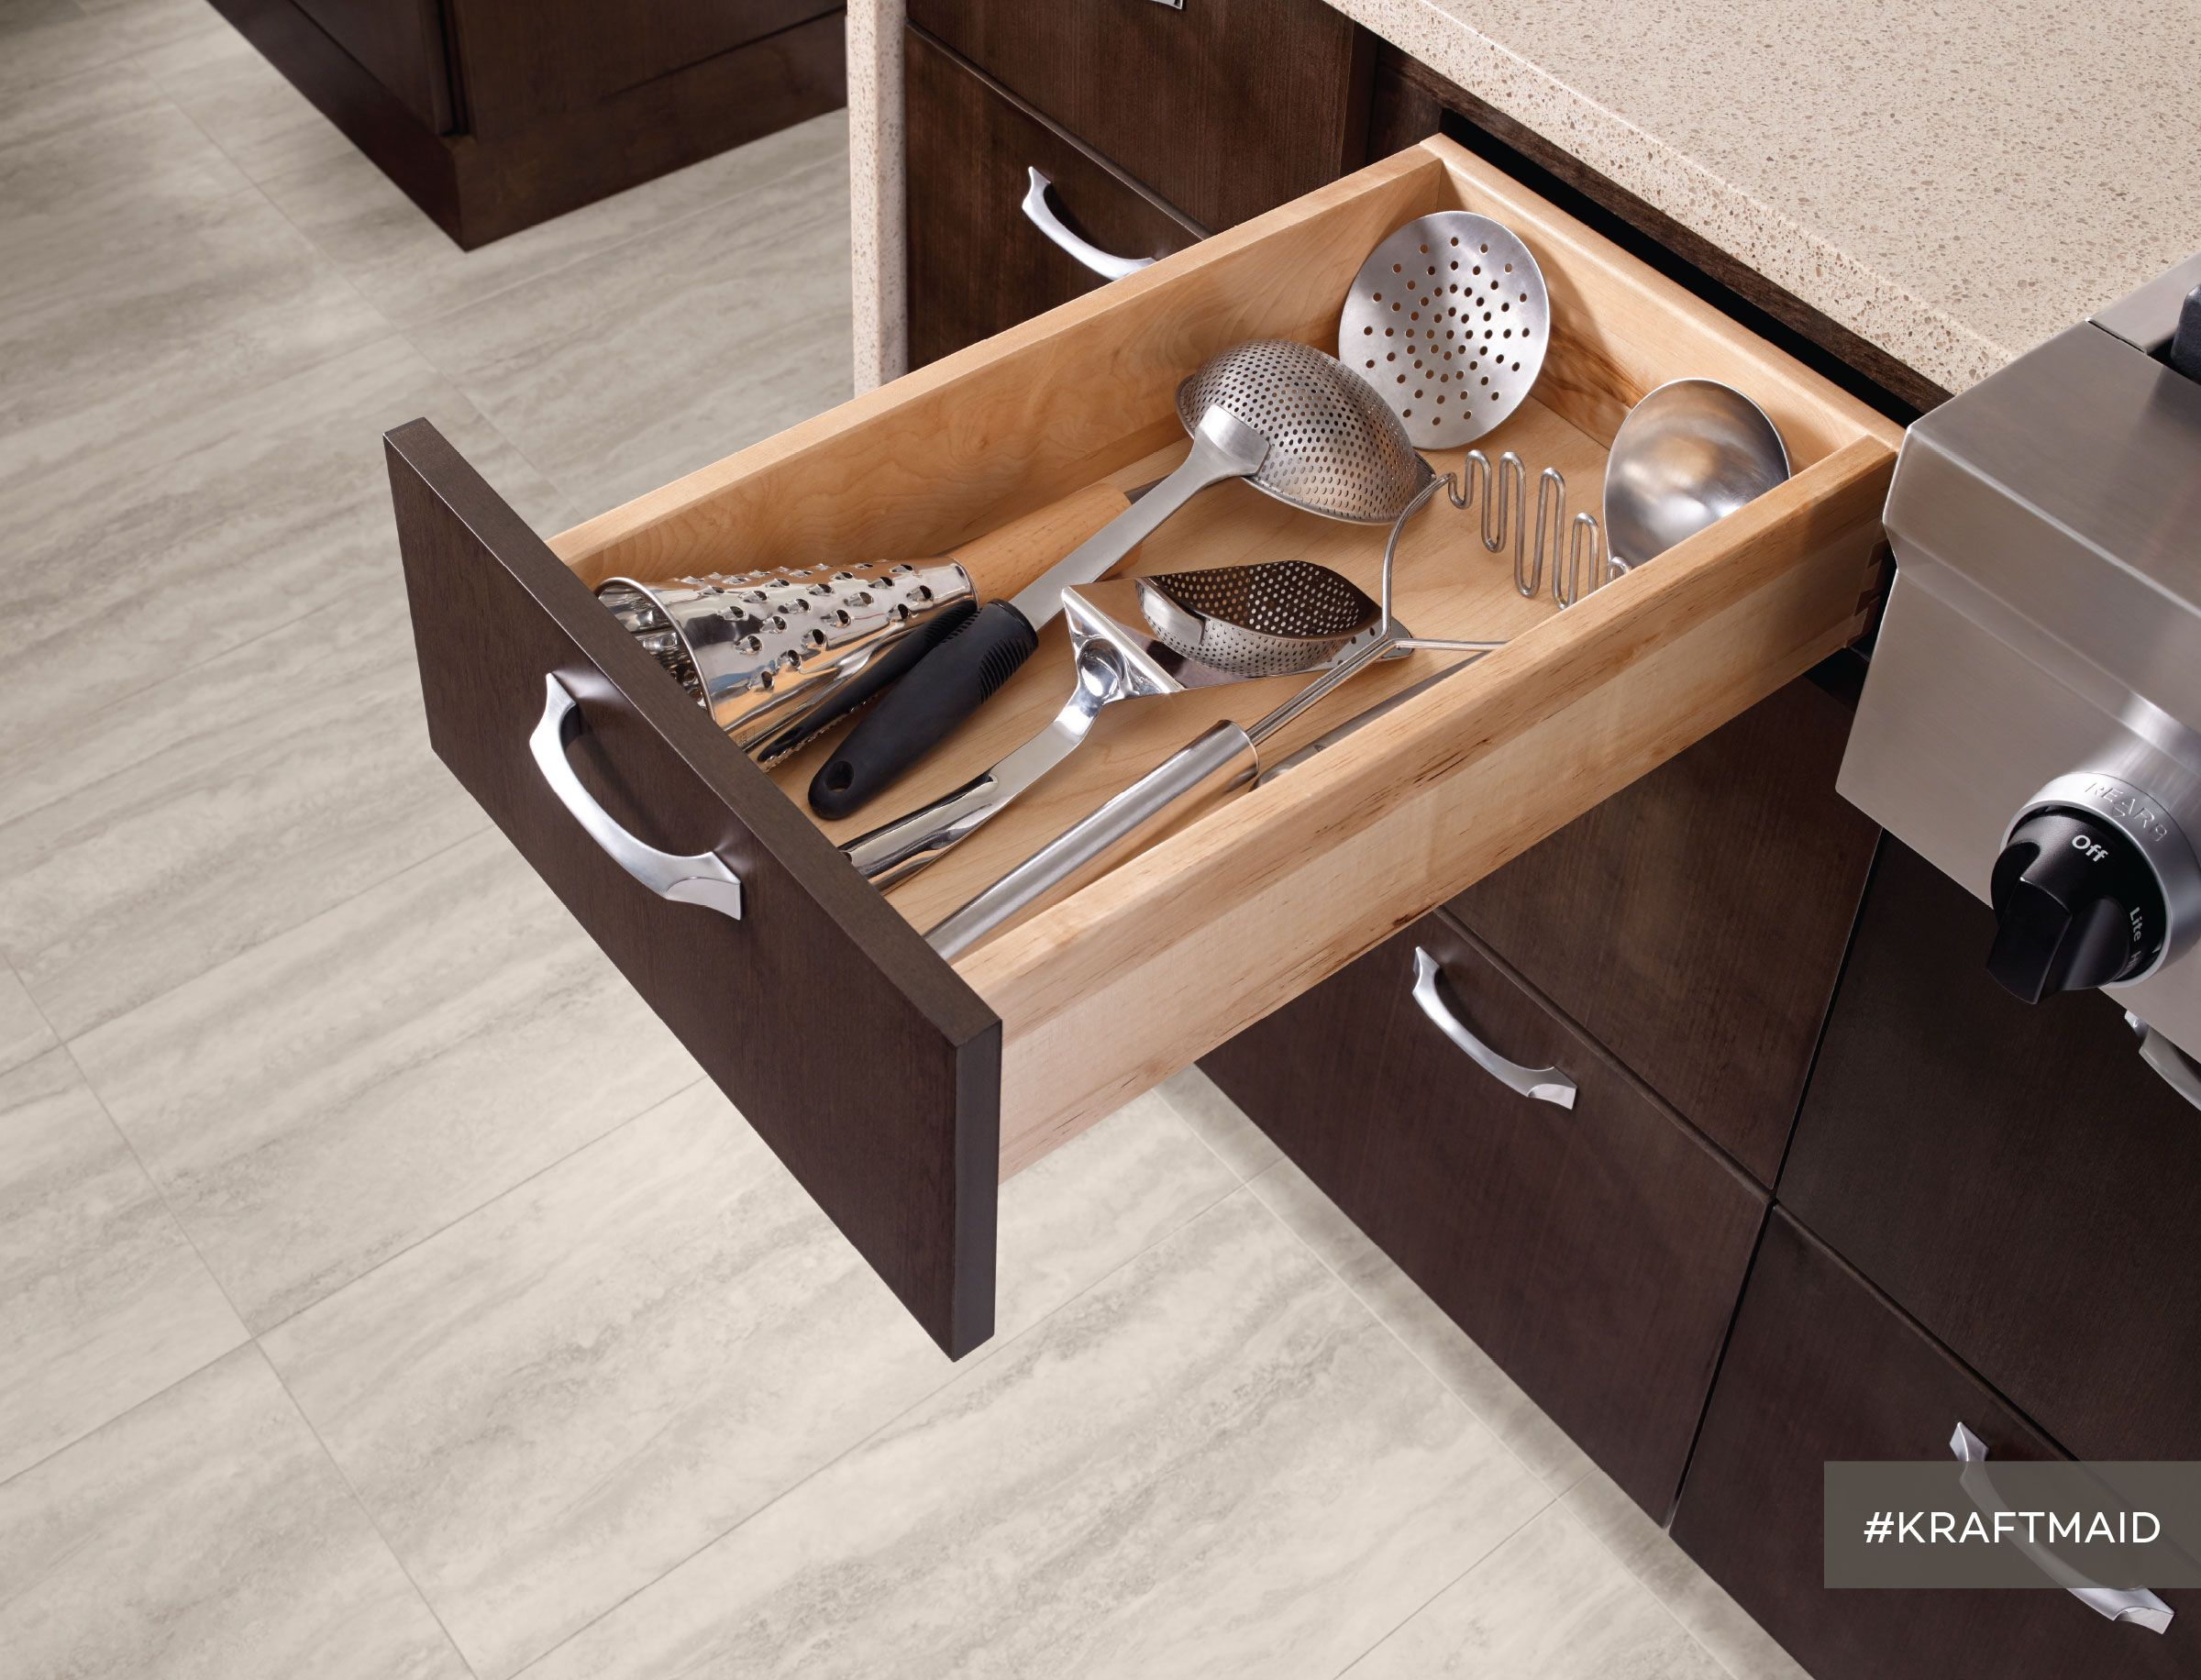 Kitchen cabinets full extension drawers - Full Extension Deep Drawers Are Especially Deep So No More Ladle Jams